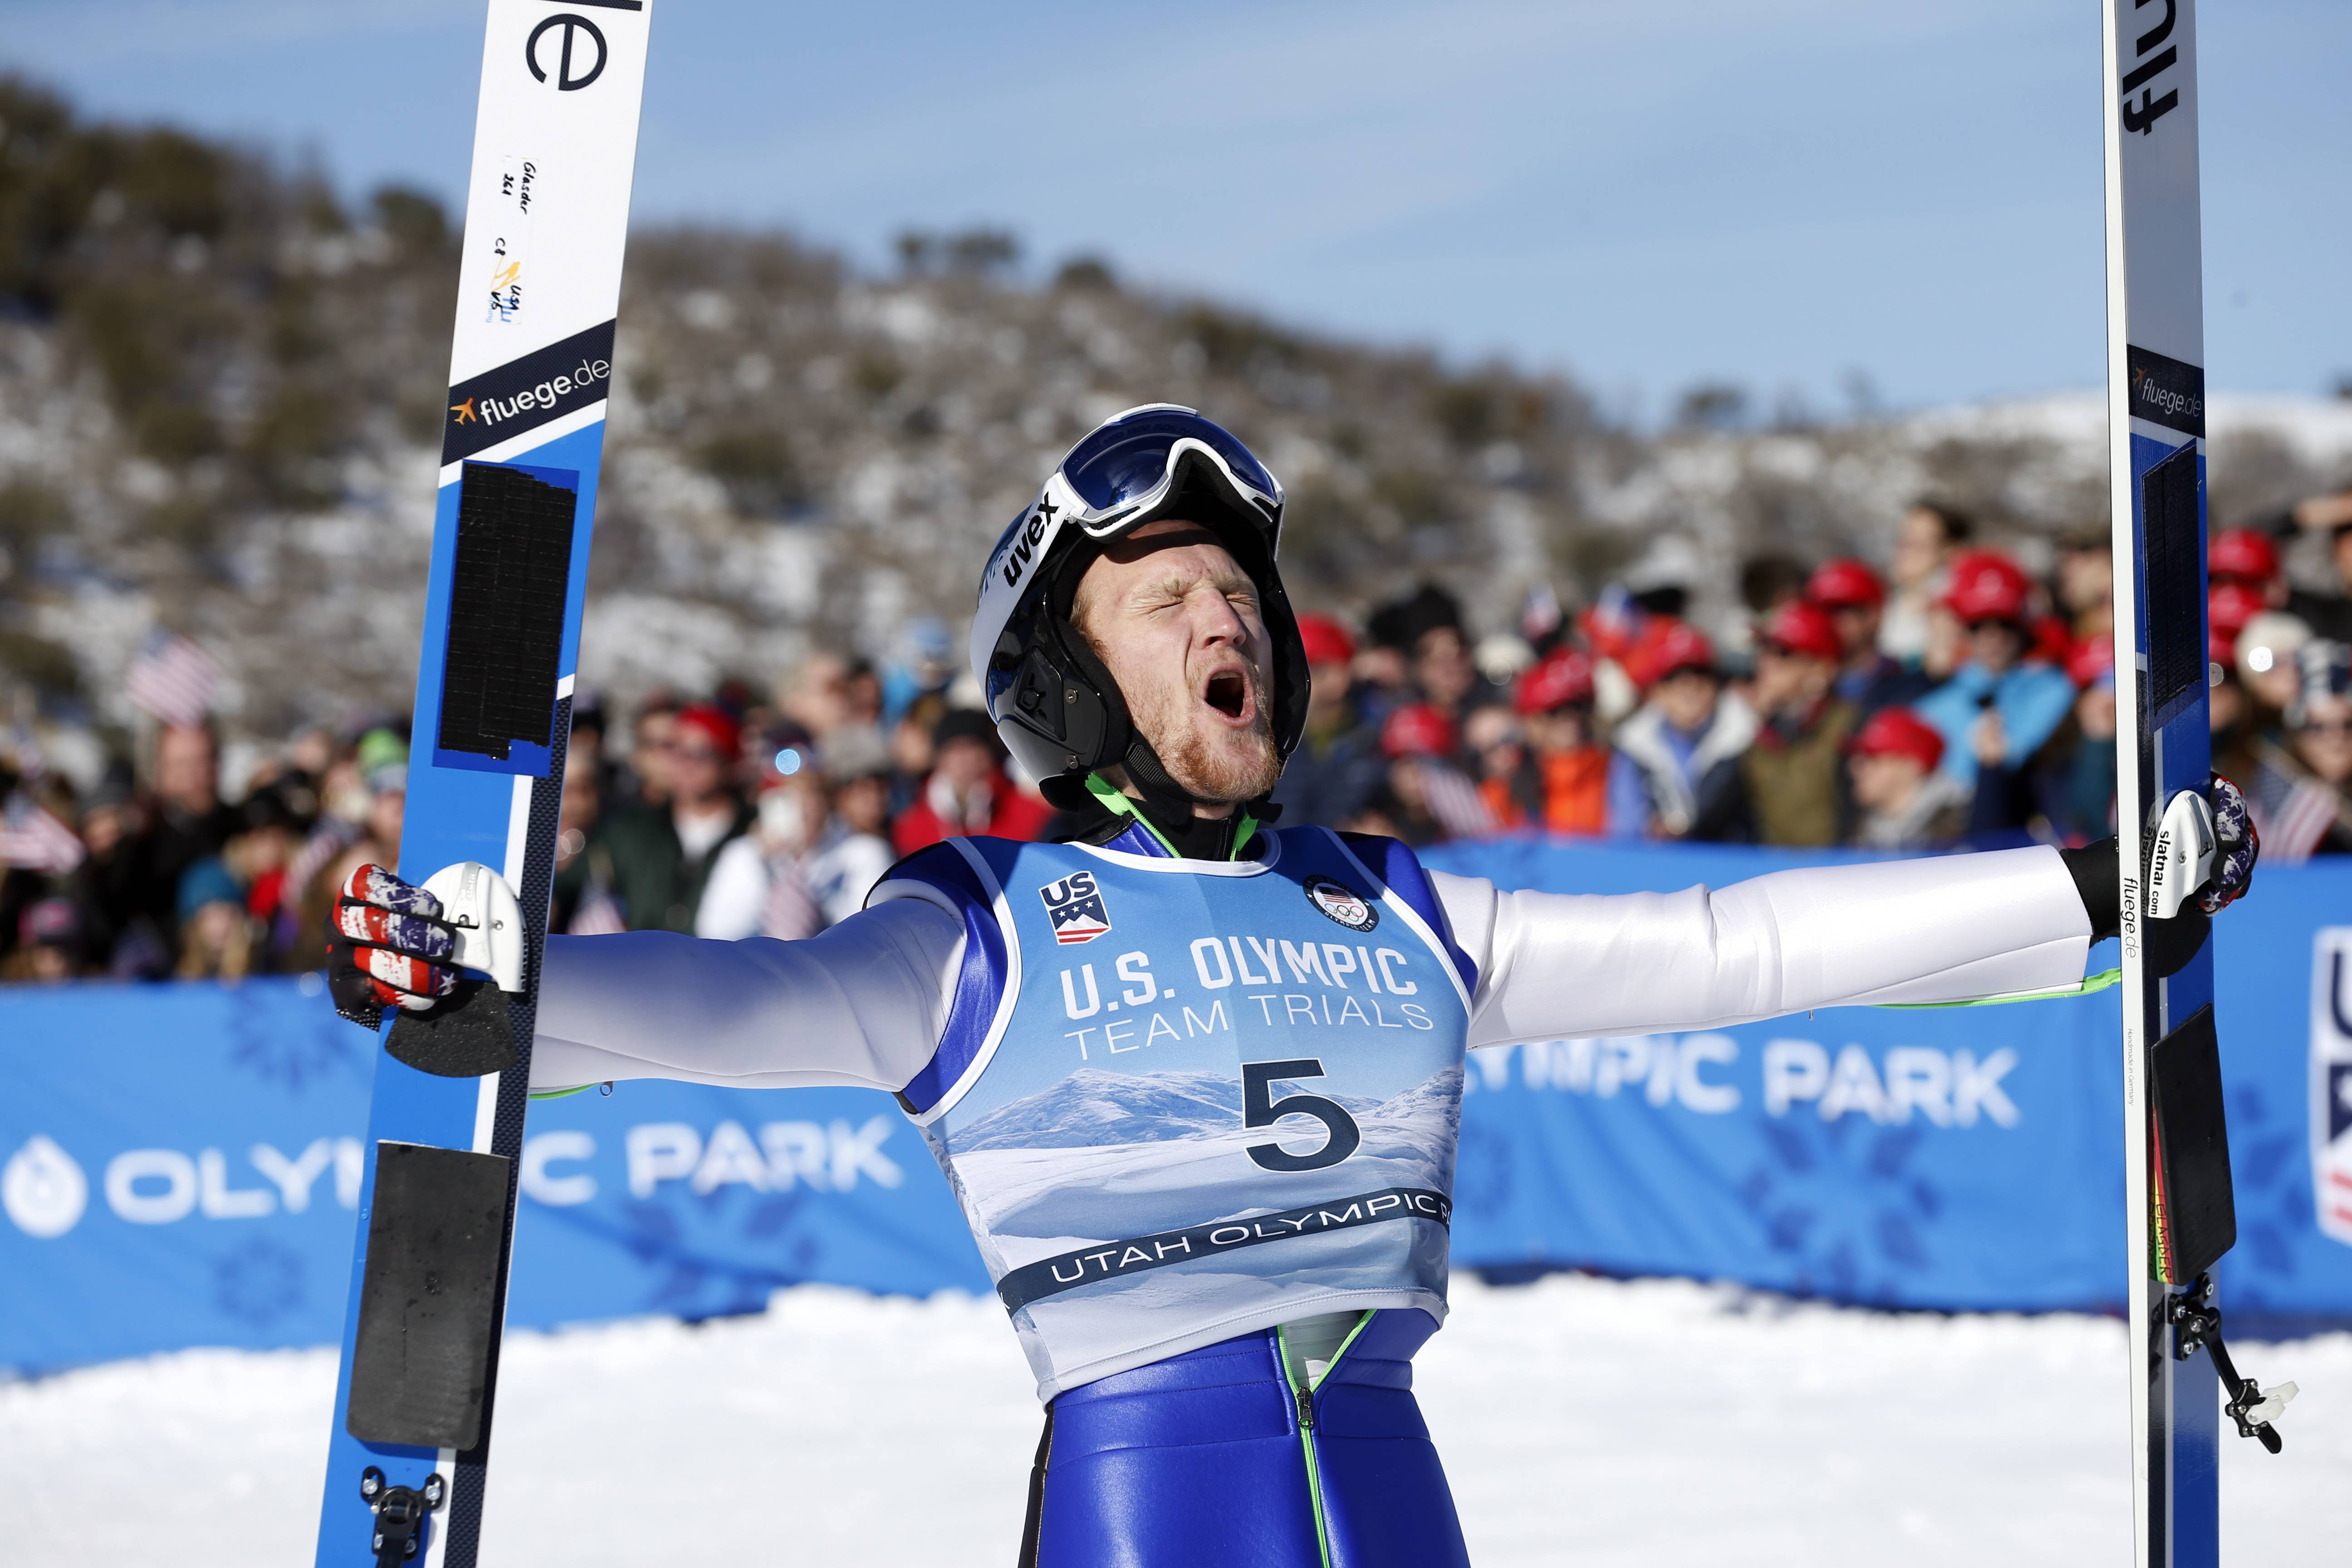 Norge Ski Club member Michael Glasder, 28, of Cary celebrates after winning the men's ski jumping event at the U.S. Olympic Team Trials Sunday in Park City, Utah. Glasder qualified for the Olympic team.